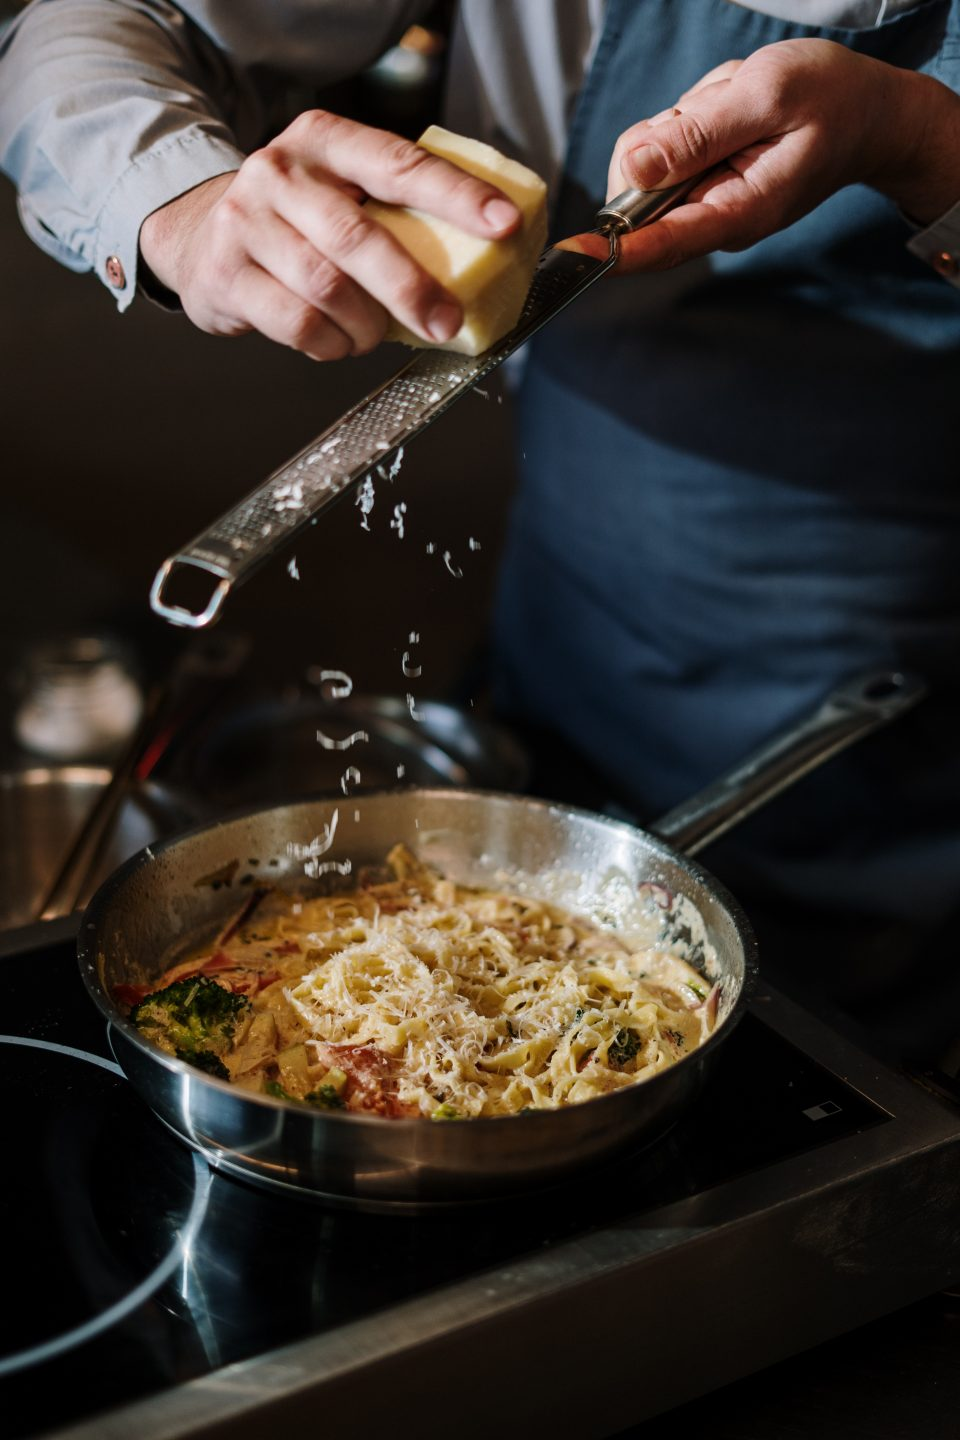 Person holding stainless steel cooking pot with pasta